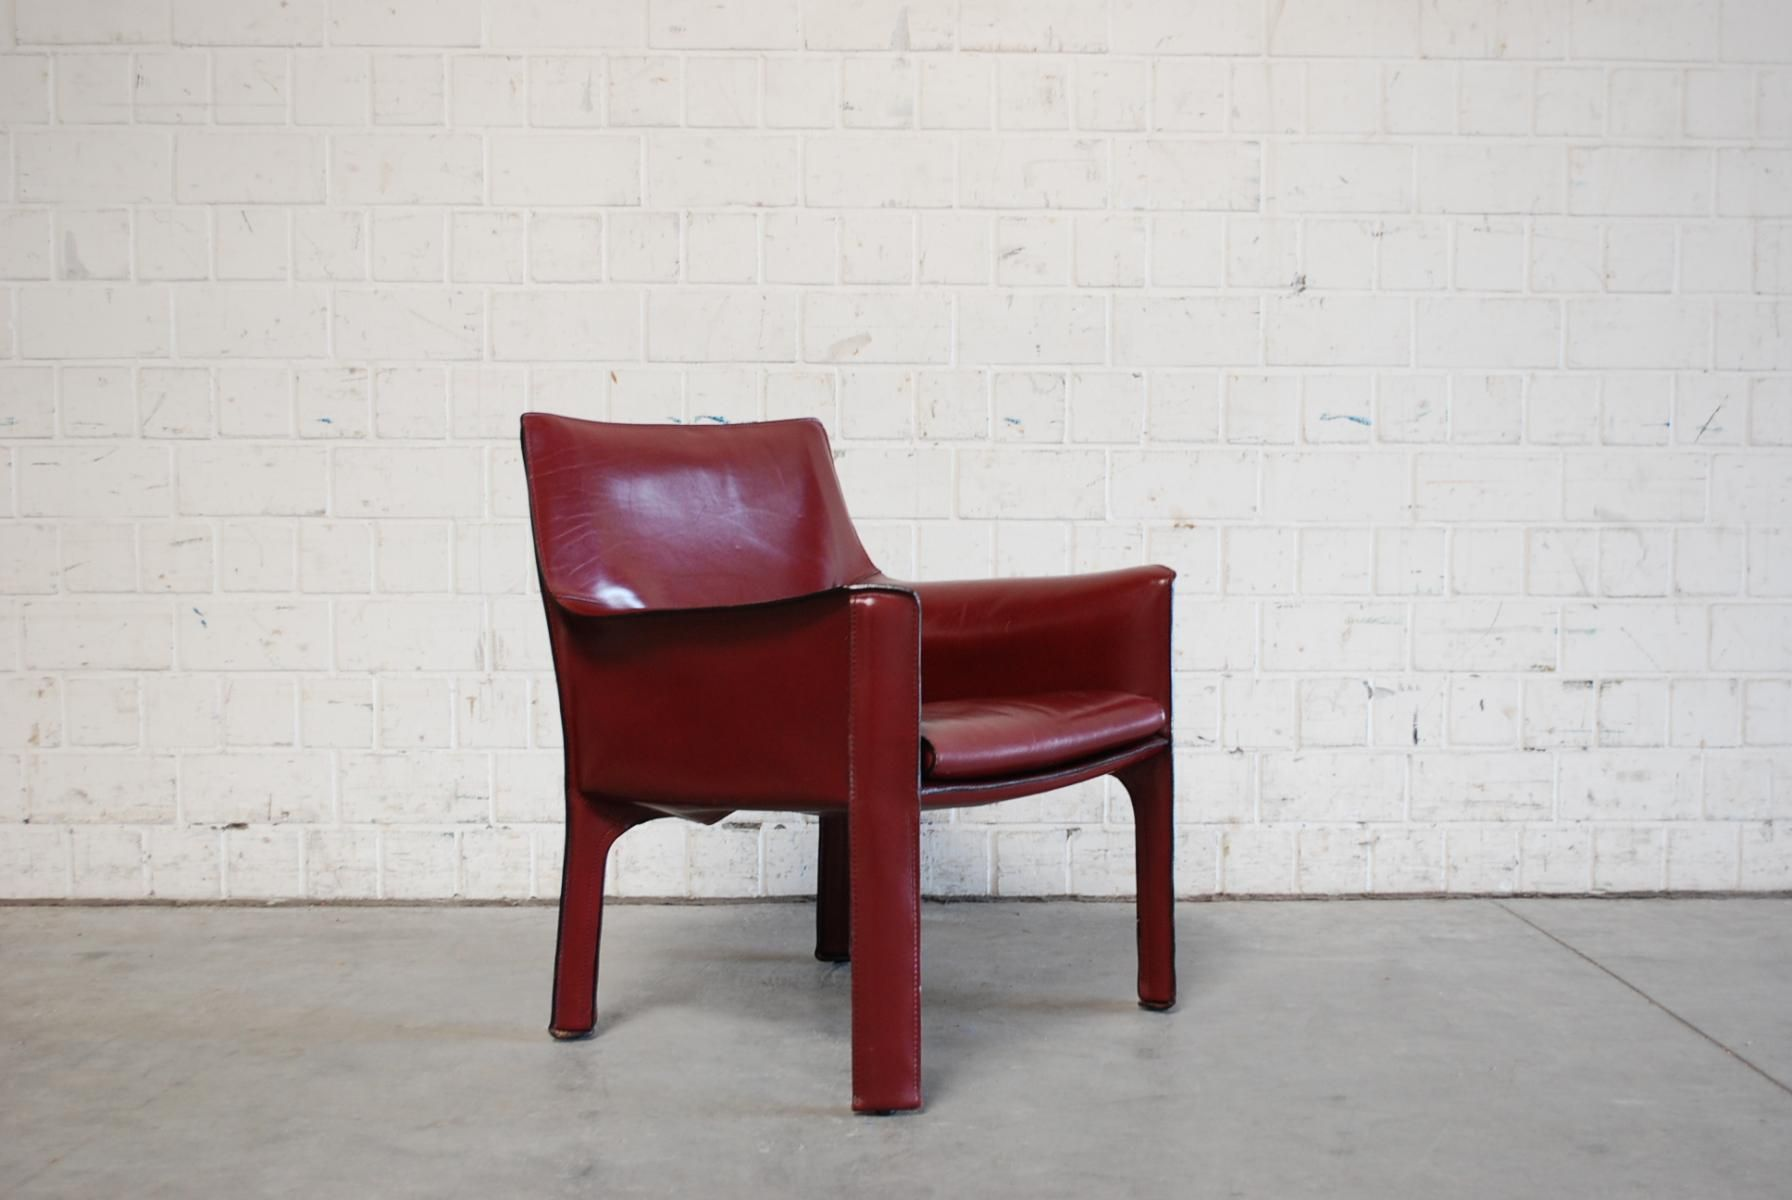 Bordeaux Red Cab 414 Lounge Chair By Mario Bellini For Cassina